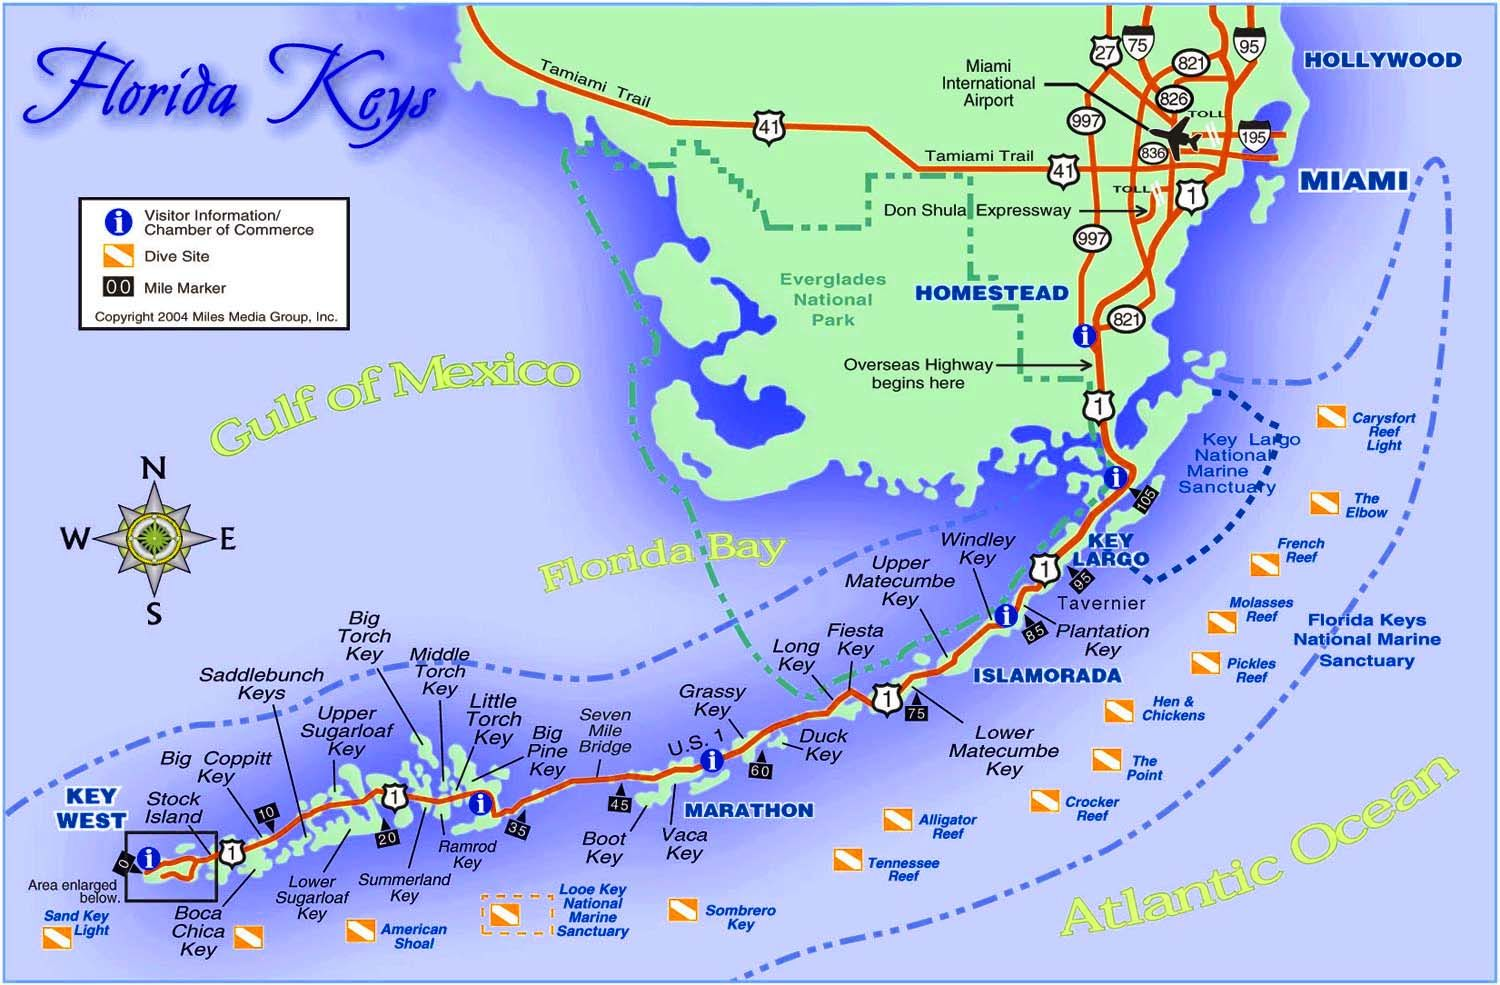 Best 25 Map of key west ideas on Pinterest  Map of florida keys